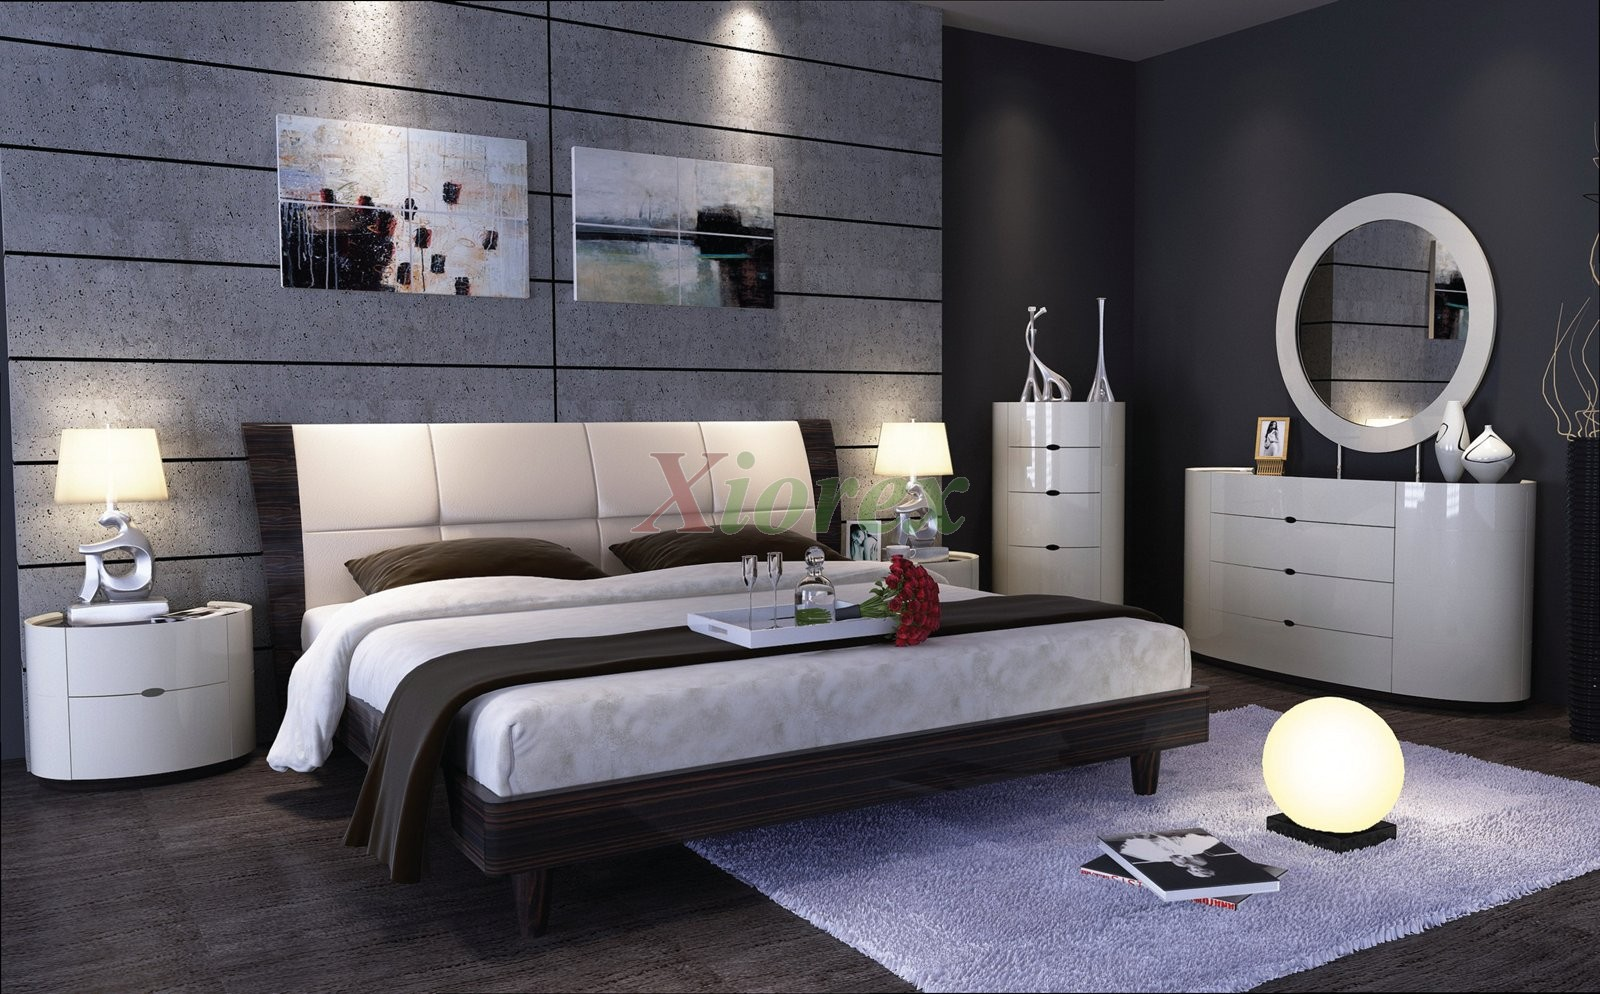 Bedroom Furniture Edmonton queen bedroom sets for sale edmonton bedroom sets edmonton | nyc